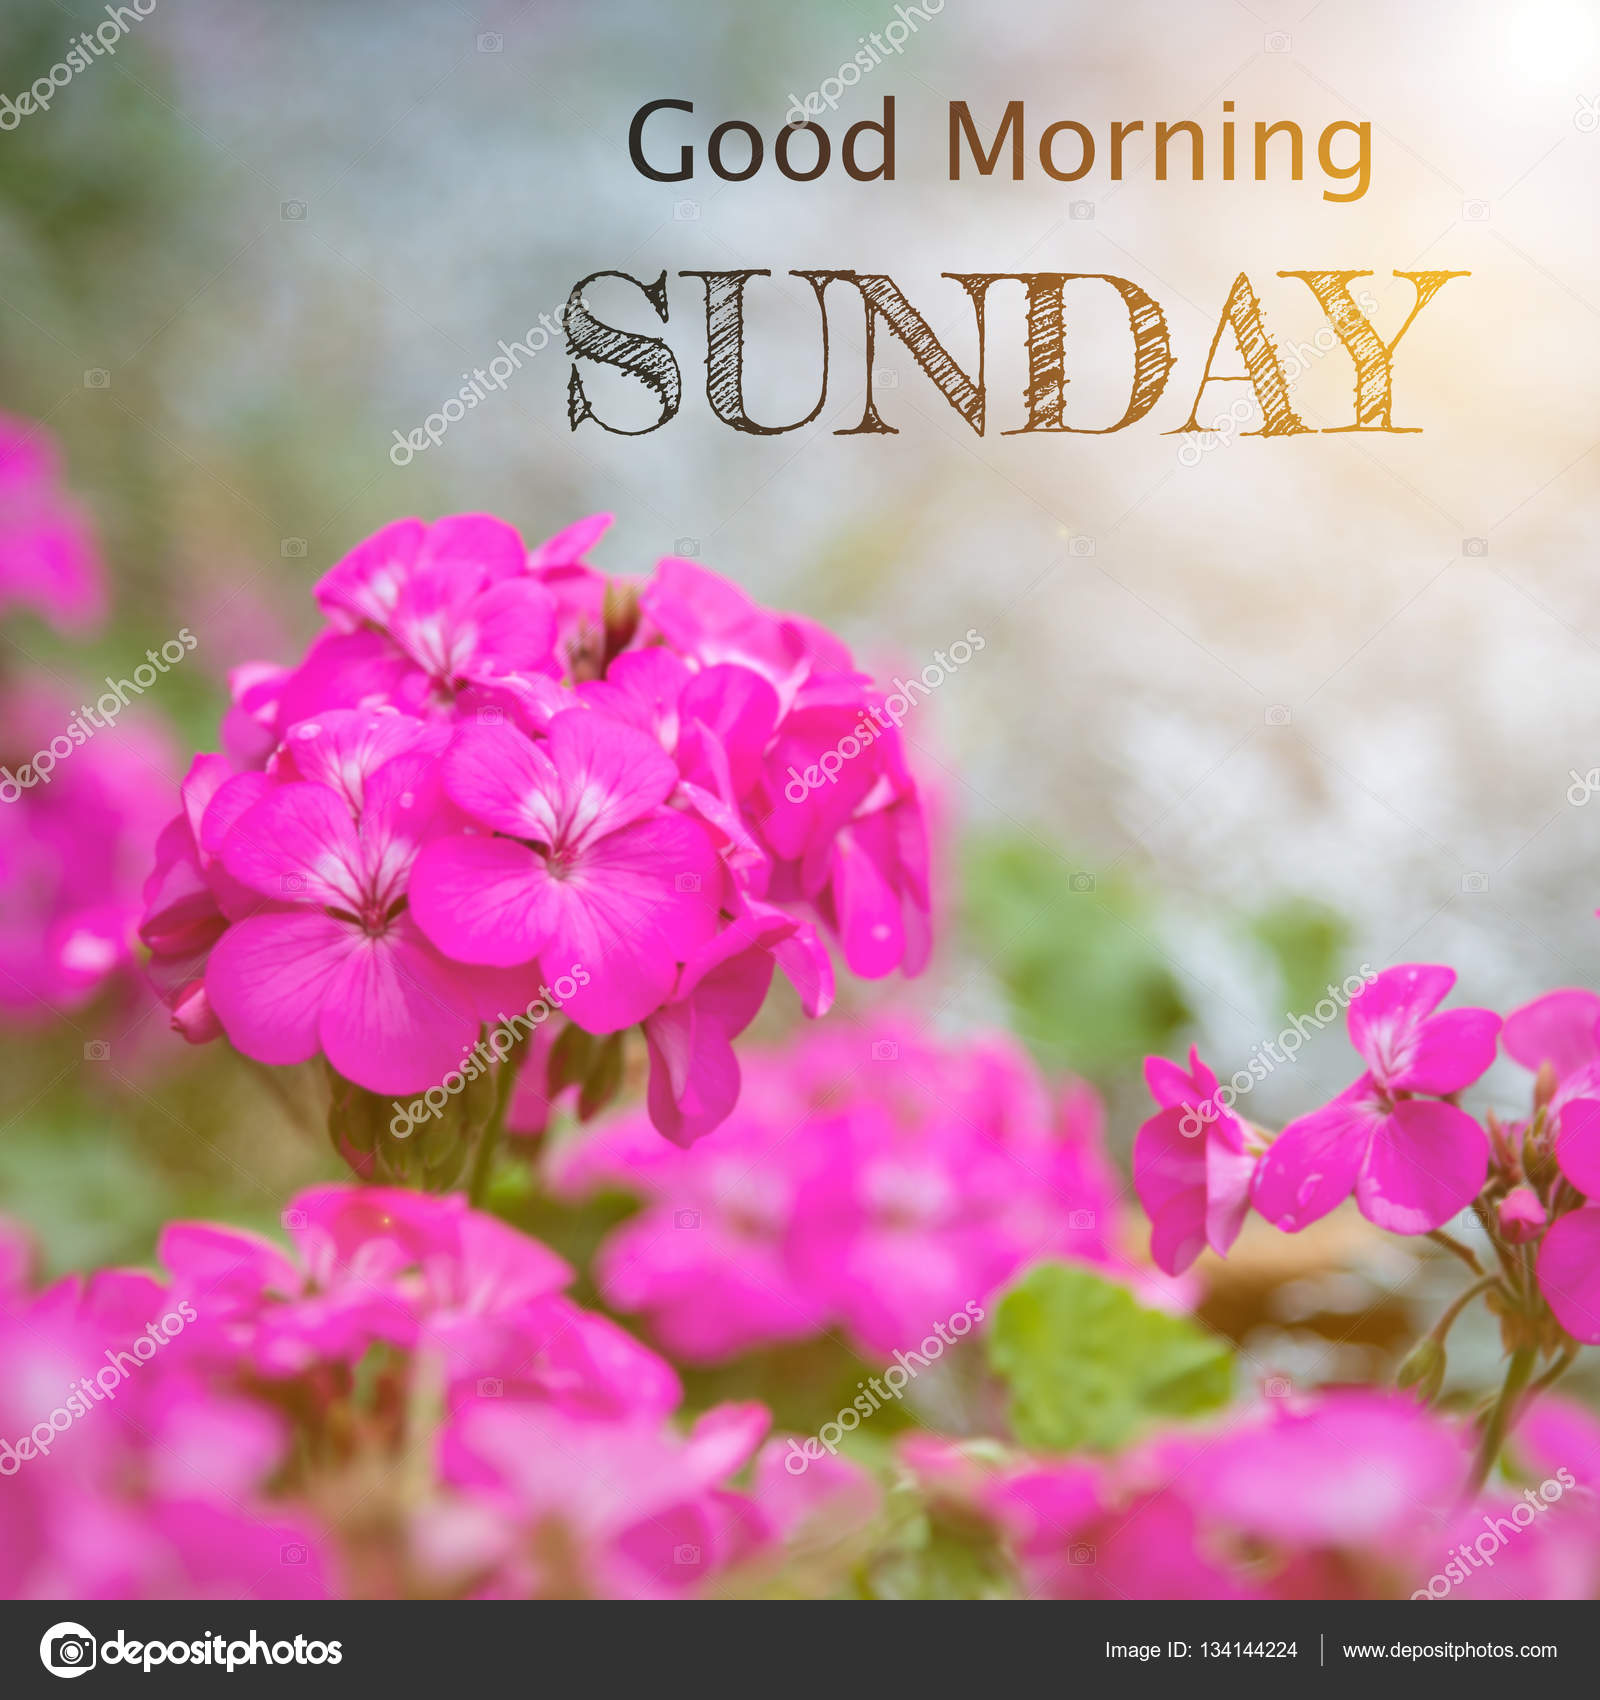 Good Morning Friends Wishing You An Amazing Sunday Download Best